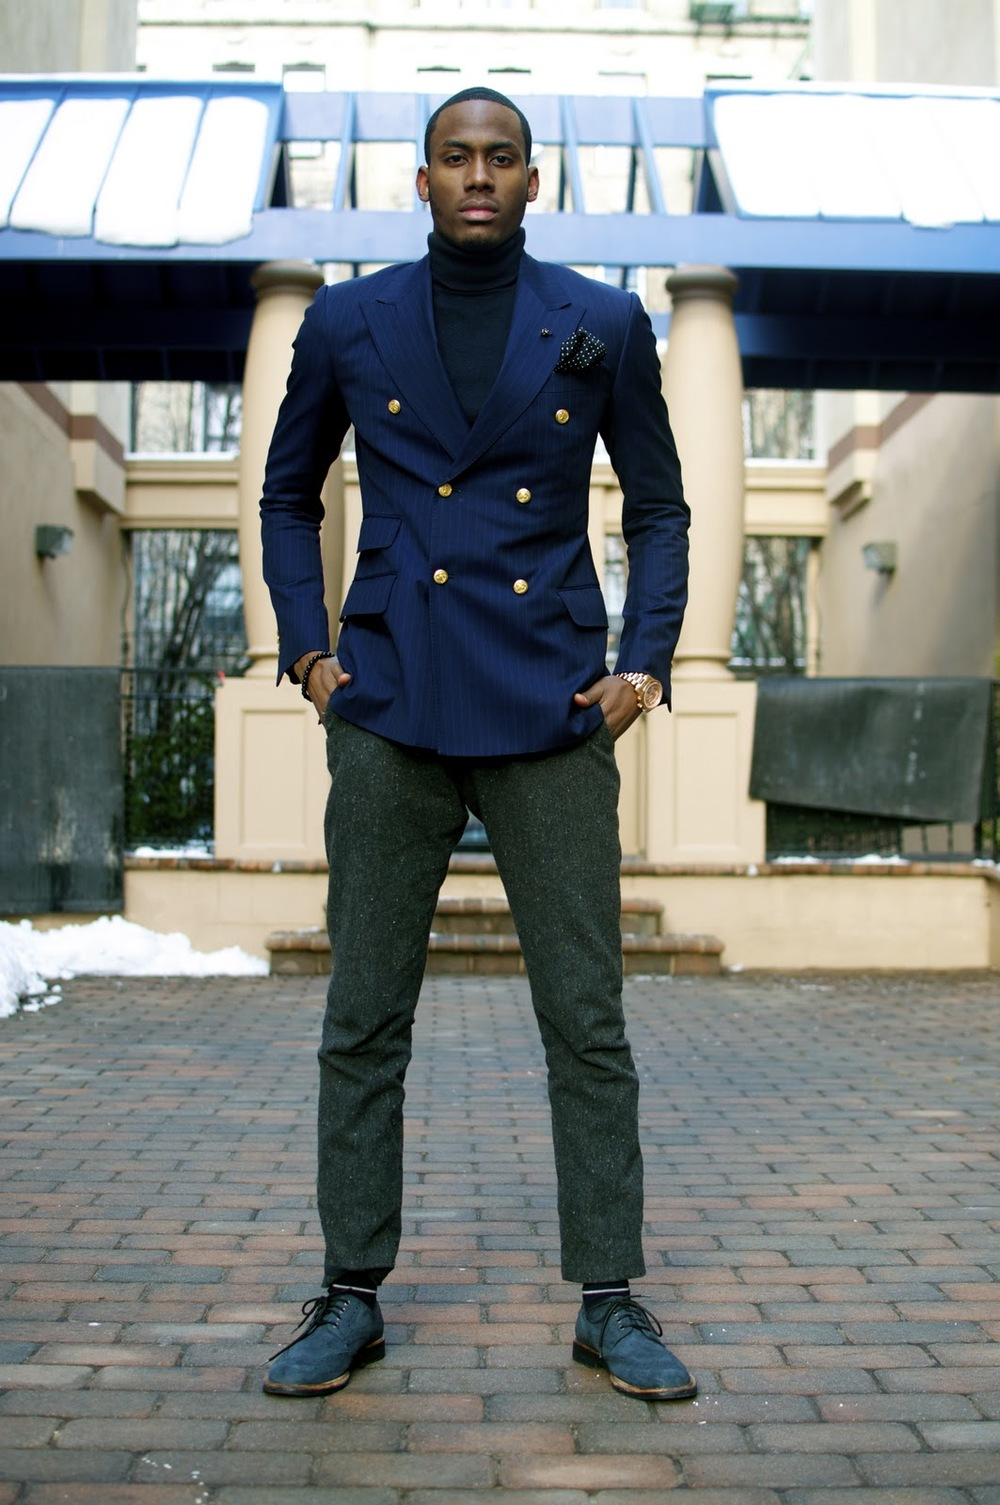 robert-double-breasted-jacket-lookbook-streetstyle-man.jpg